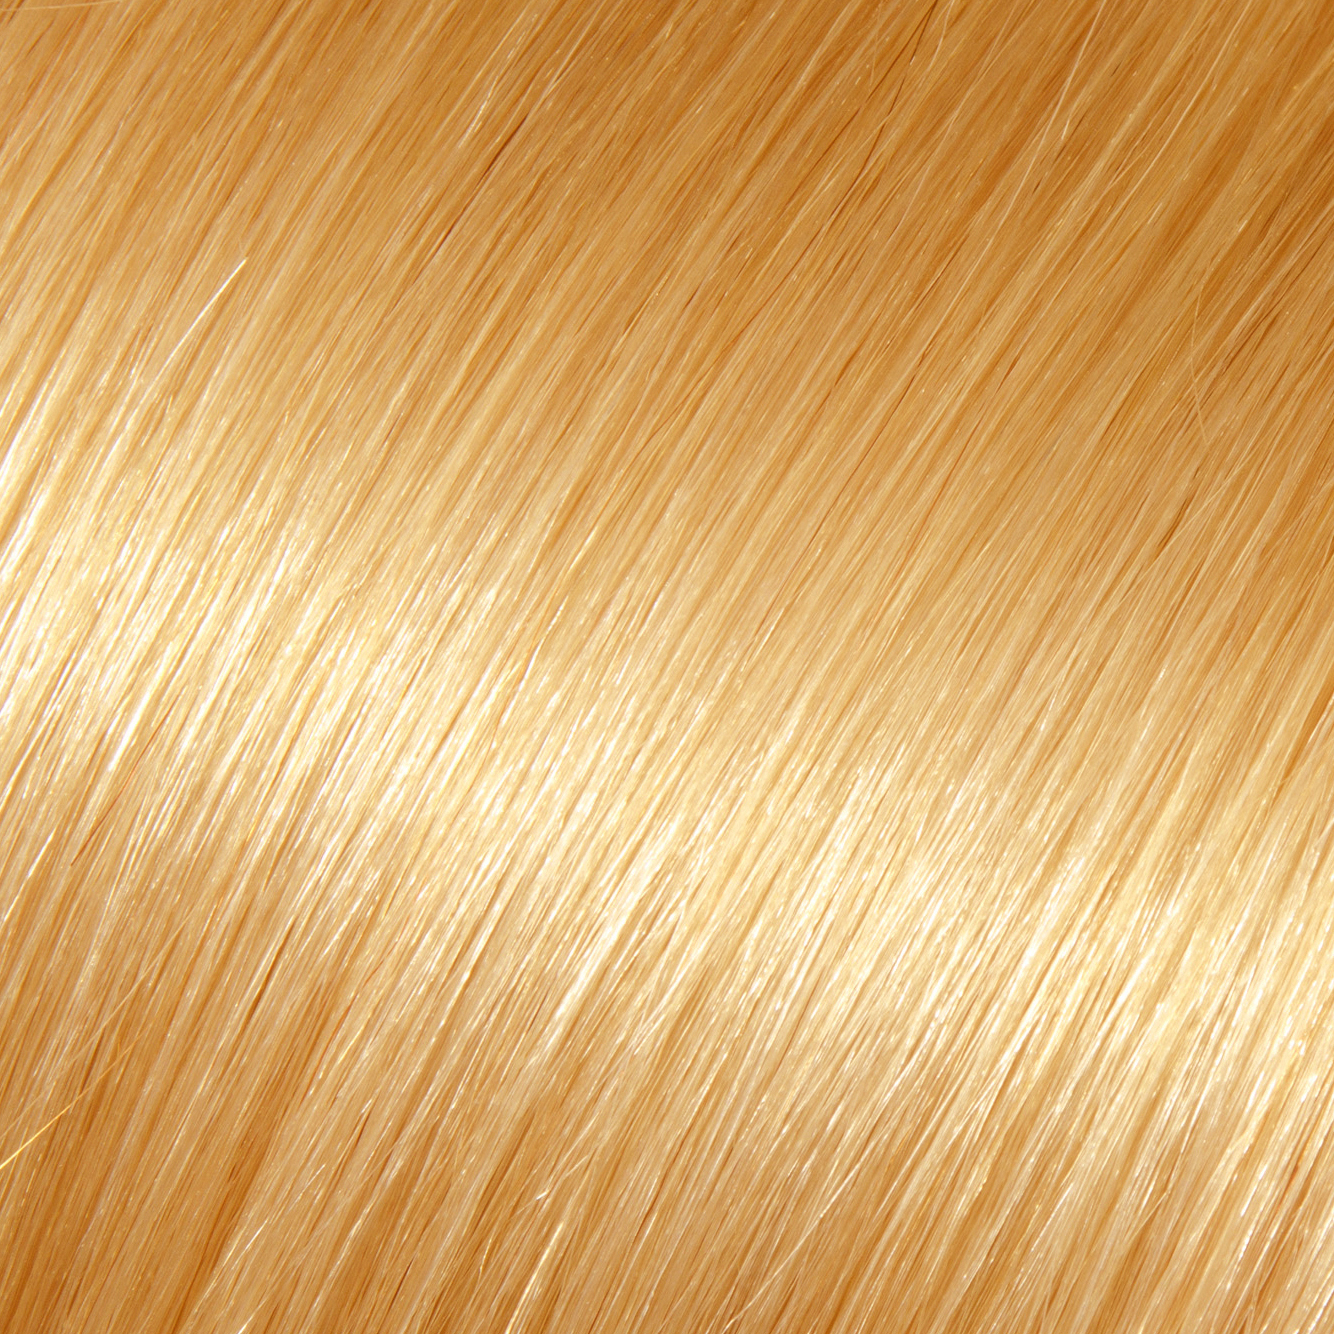 Herbal Hair Color-5b.jpg